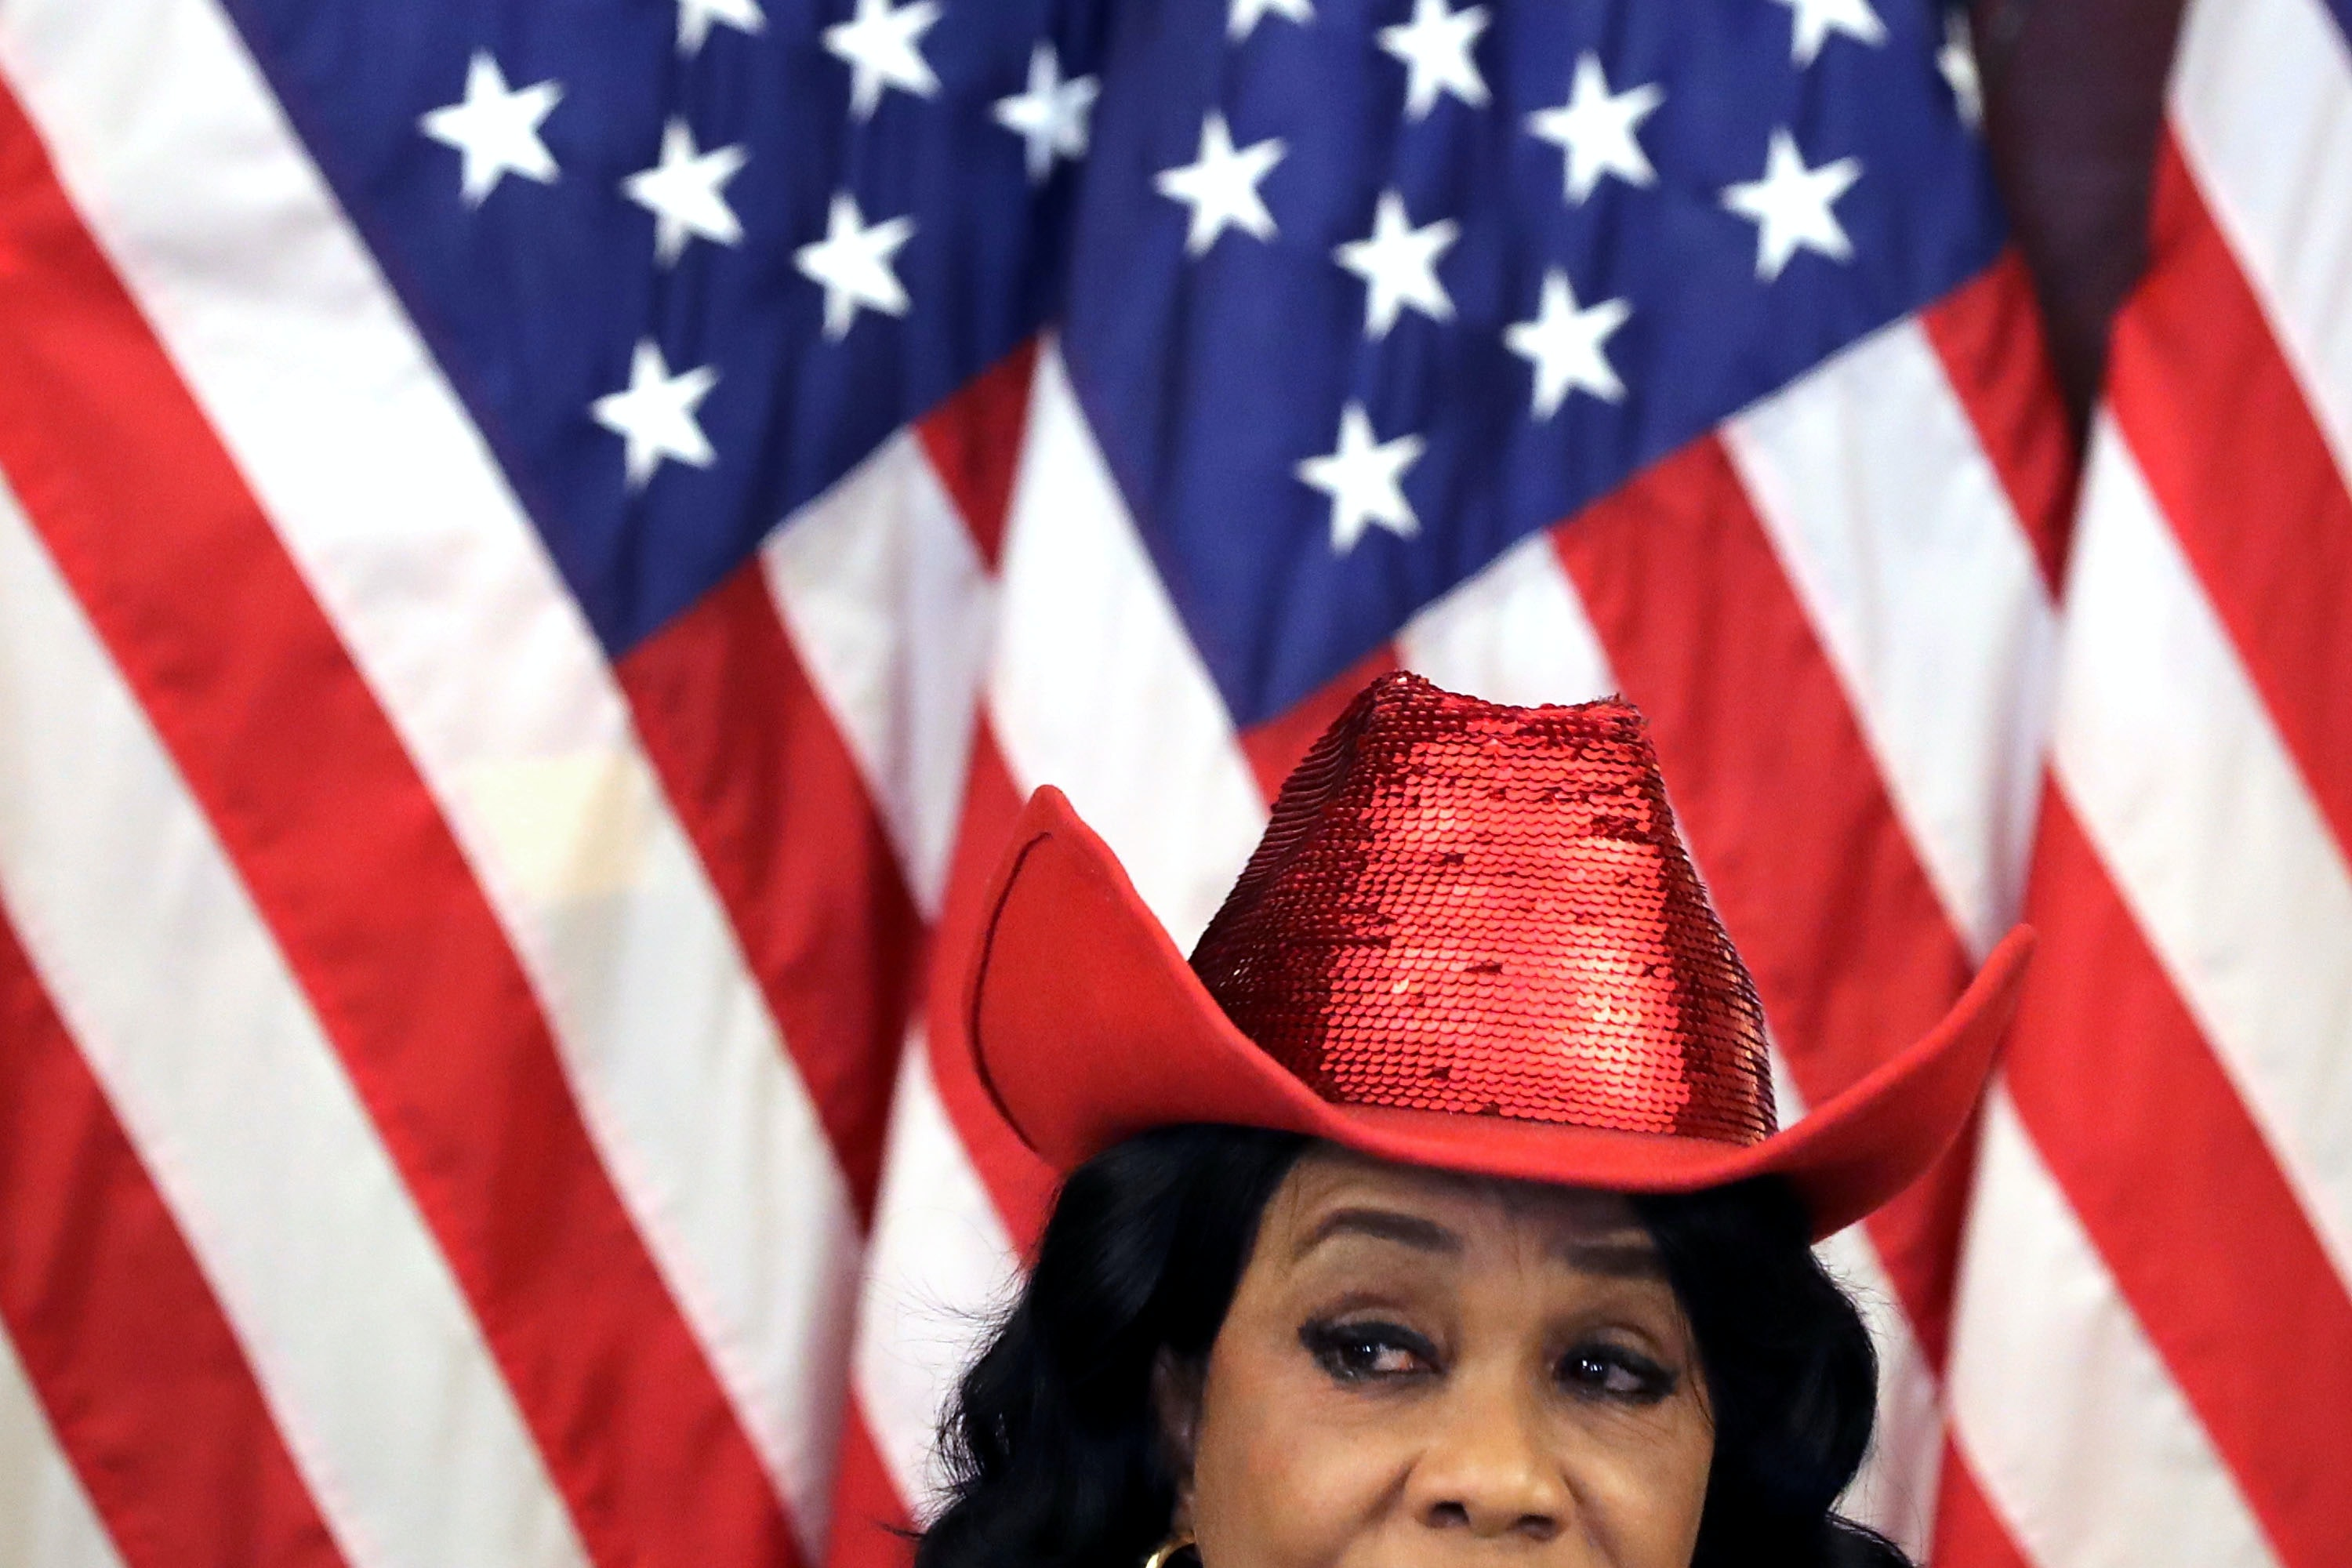 Women of Congressional Black Caucus demand Kelly apologize to Rep. Wilson